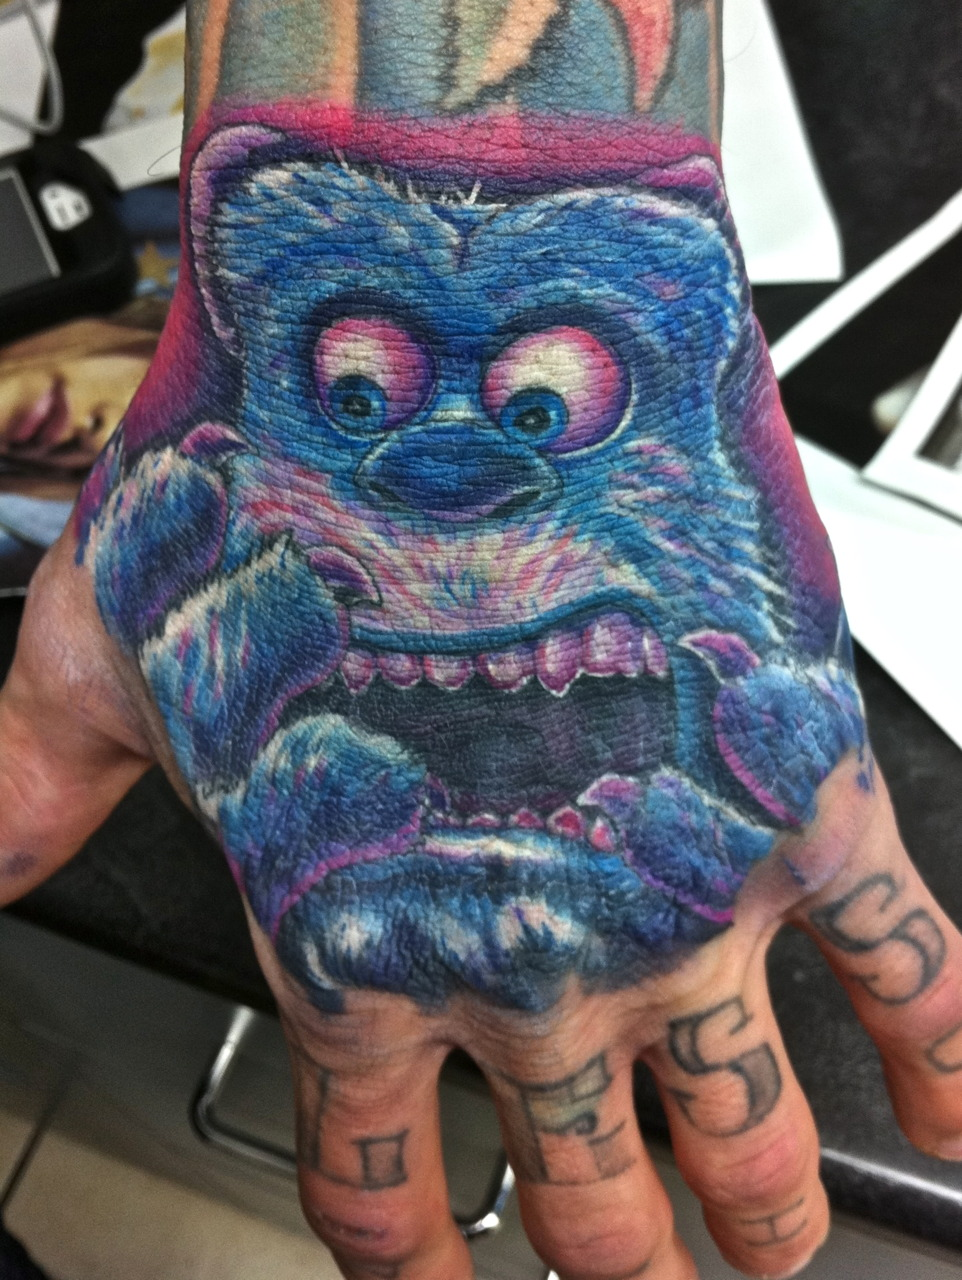 Monster Tattoos - Ice Age Hand Tattoo